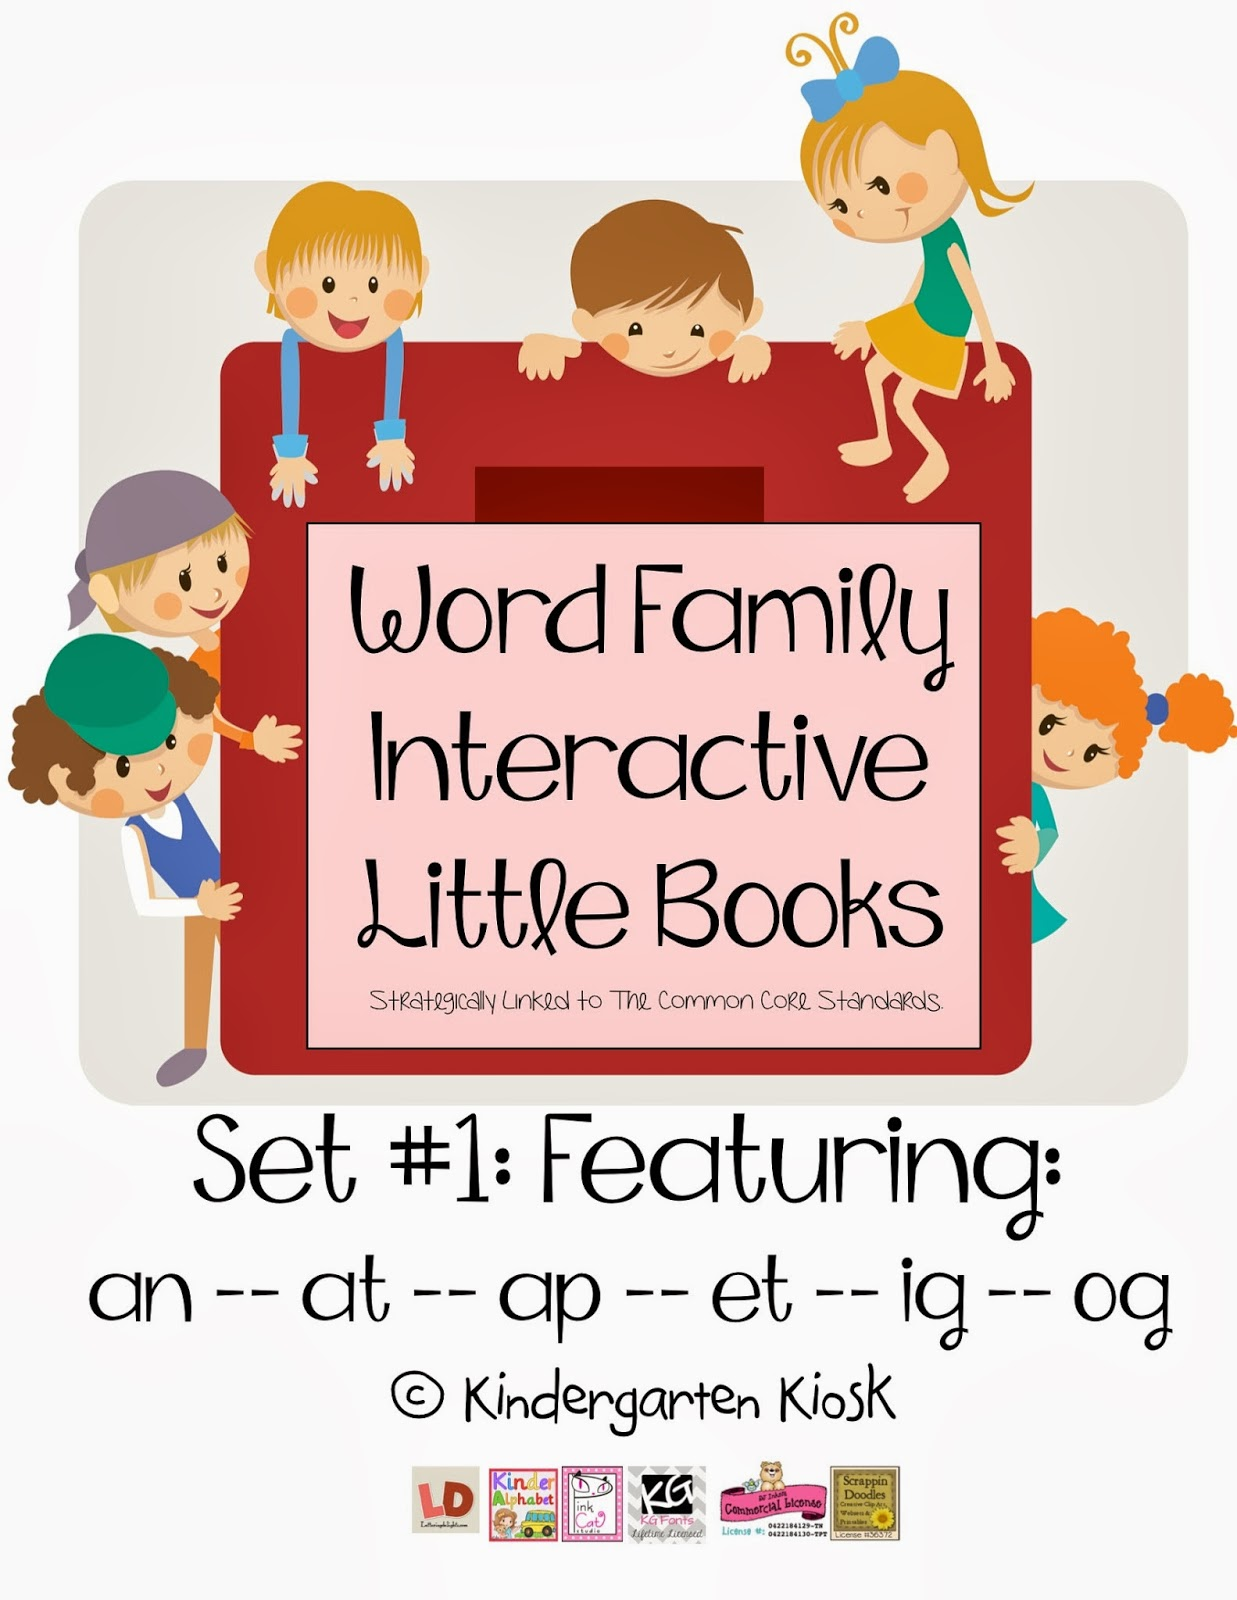 Kindergarten Kiosk Word Family Interactive Little Books